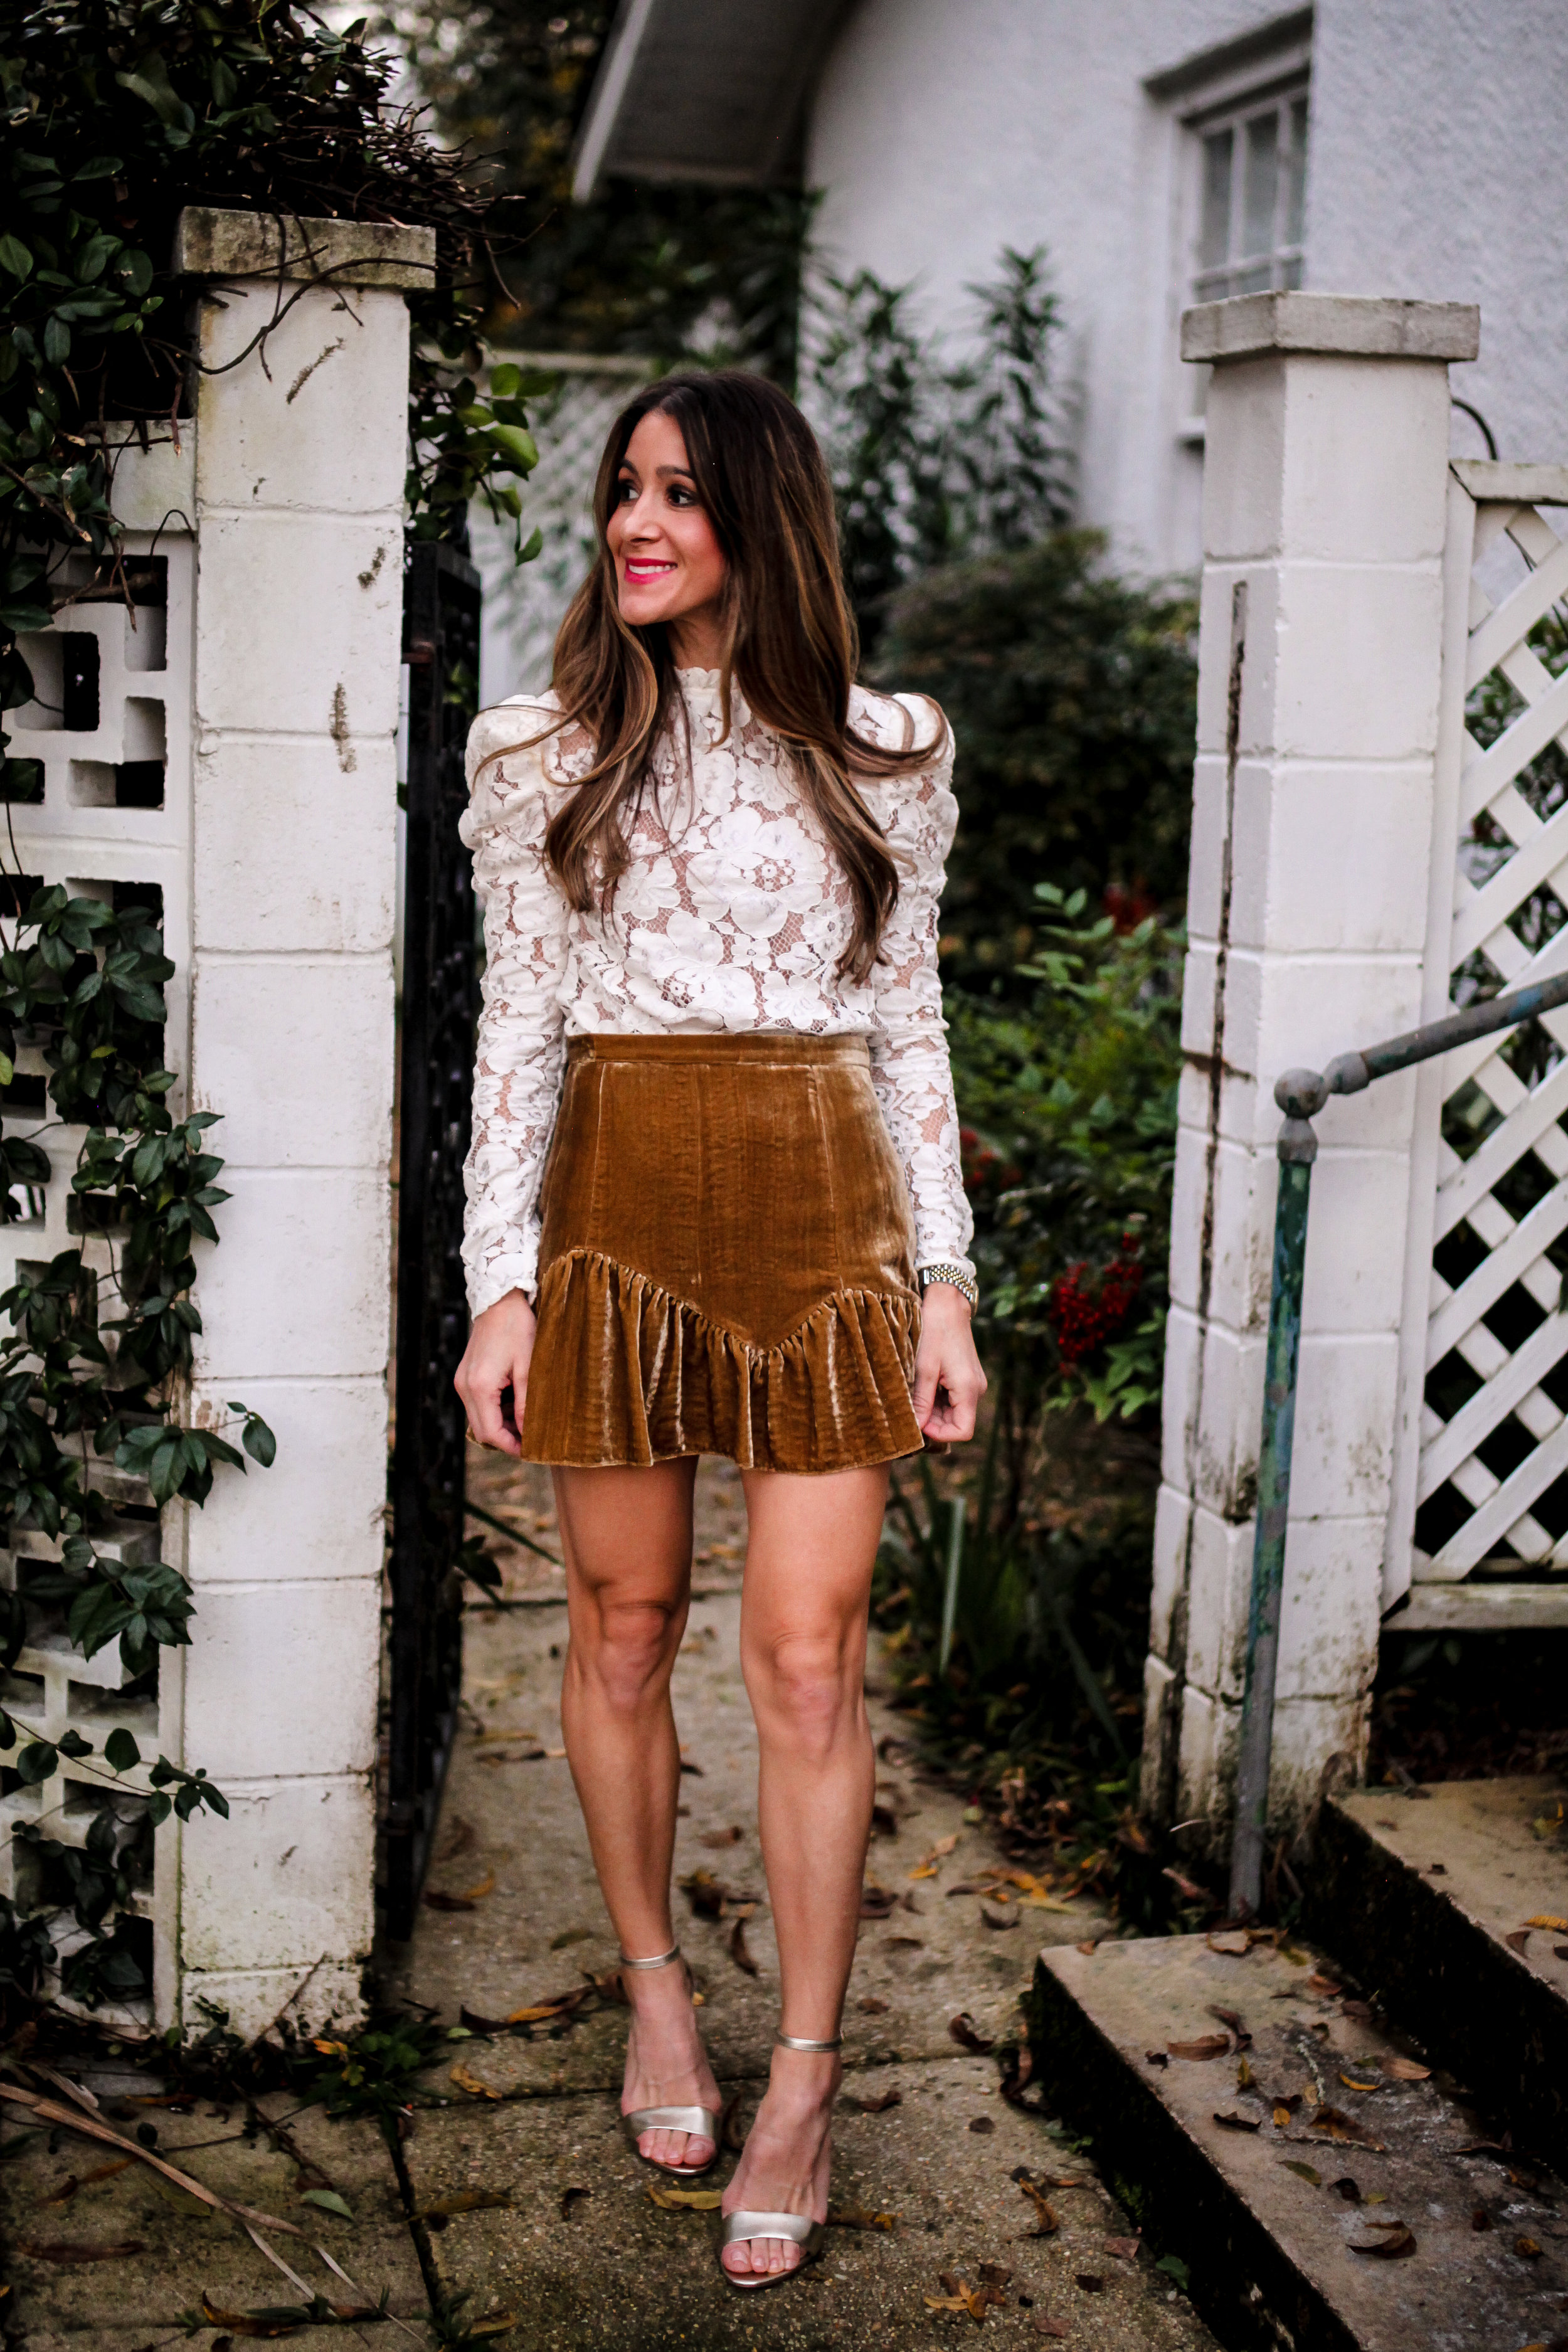 LACE TOP - WAYF -  HERE  | VELVET SKIRT - LOVE SHACK FANCY -  HERE  | SHOES - SAM EDELMAN -  HERE  | EARRINGS - LELE SADOUGHI -  HERE  | FAUX FUR CROPPED JACKET - OLD - SIMILAR  HERE  |